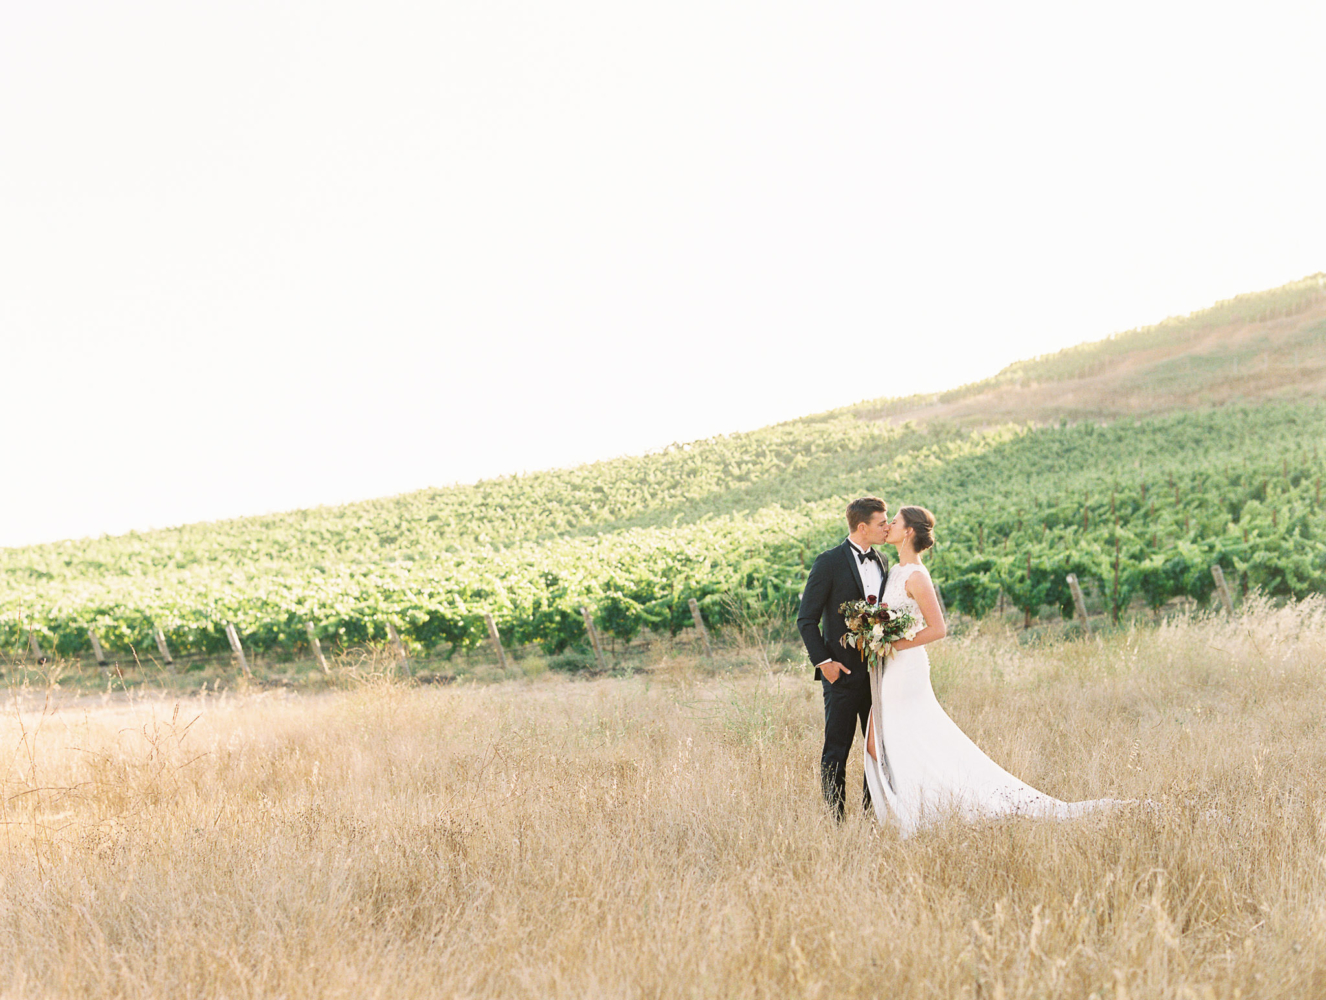 Photo of bride and groom at La Lomita Ranch San Luis Obispo Wedding Venue California